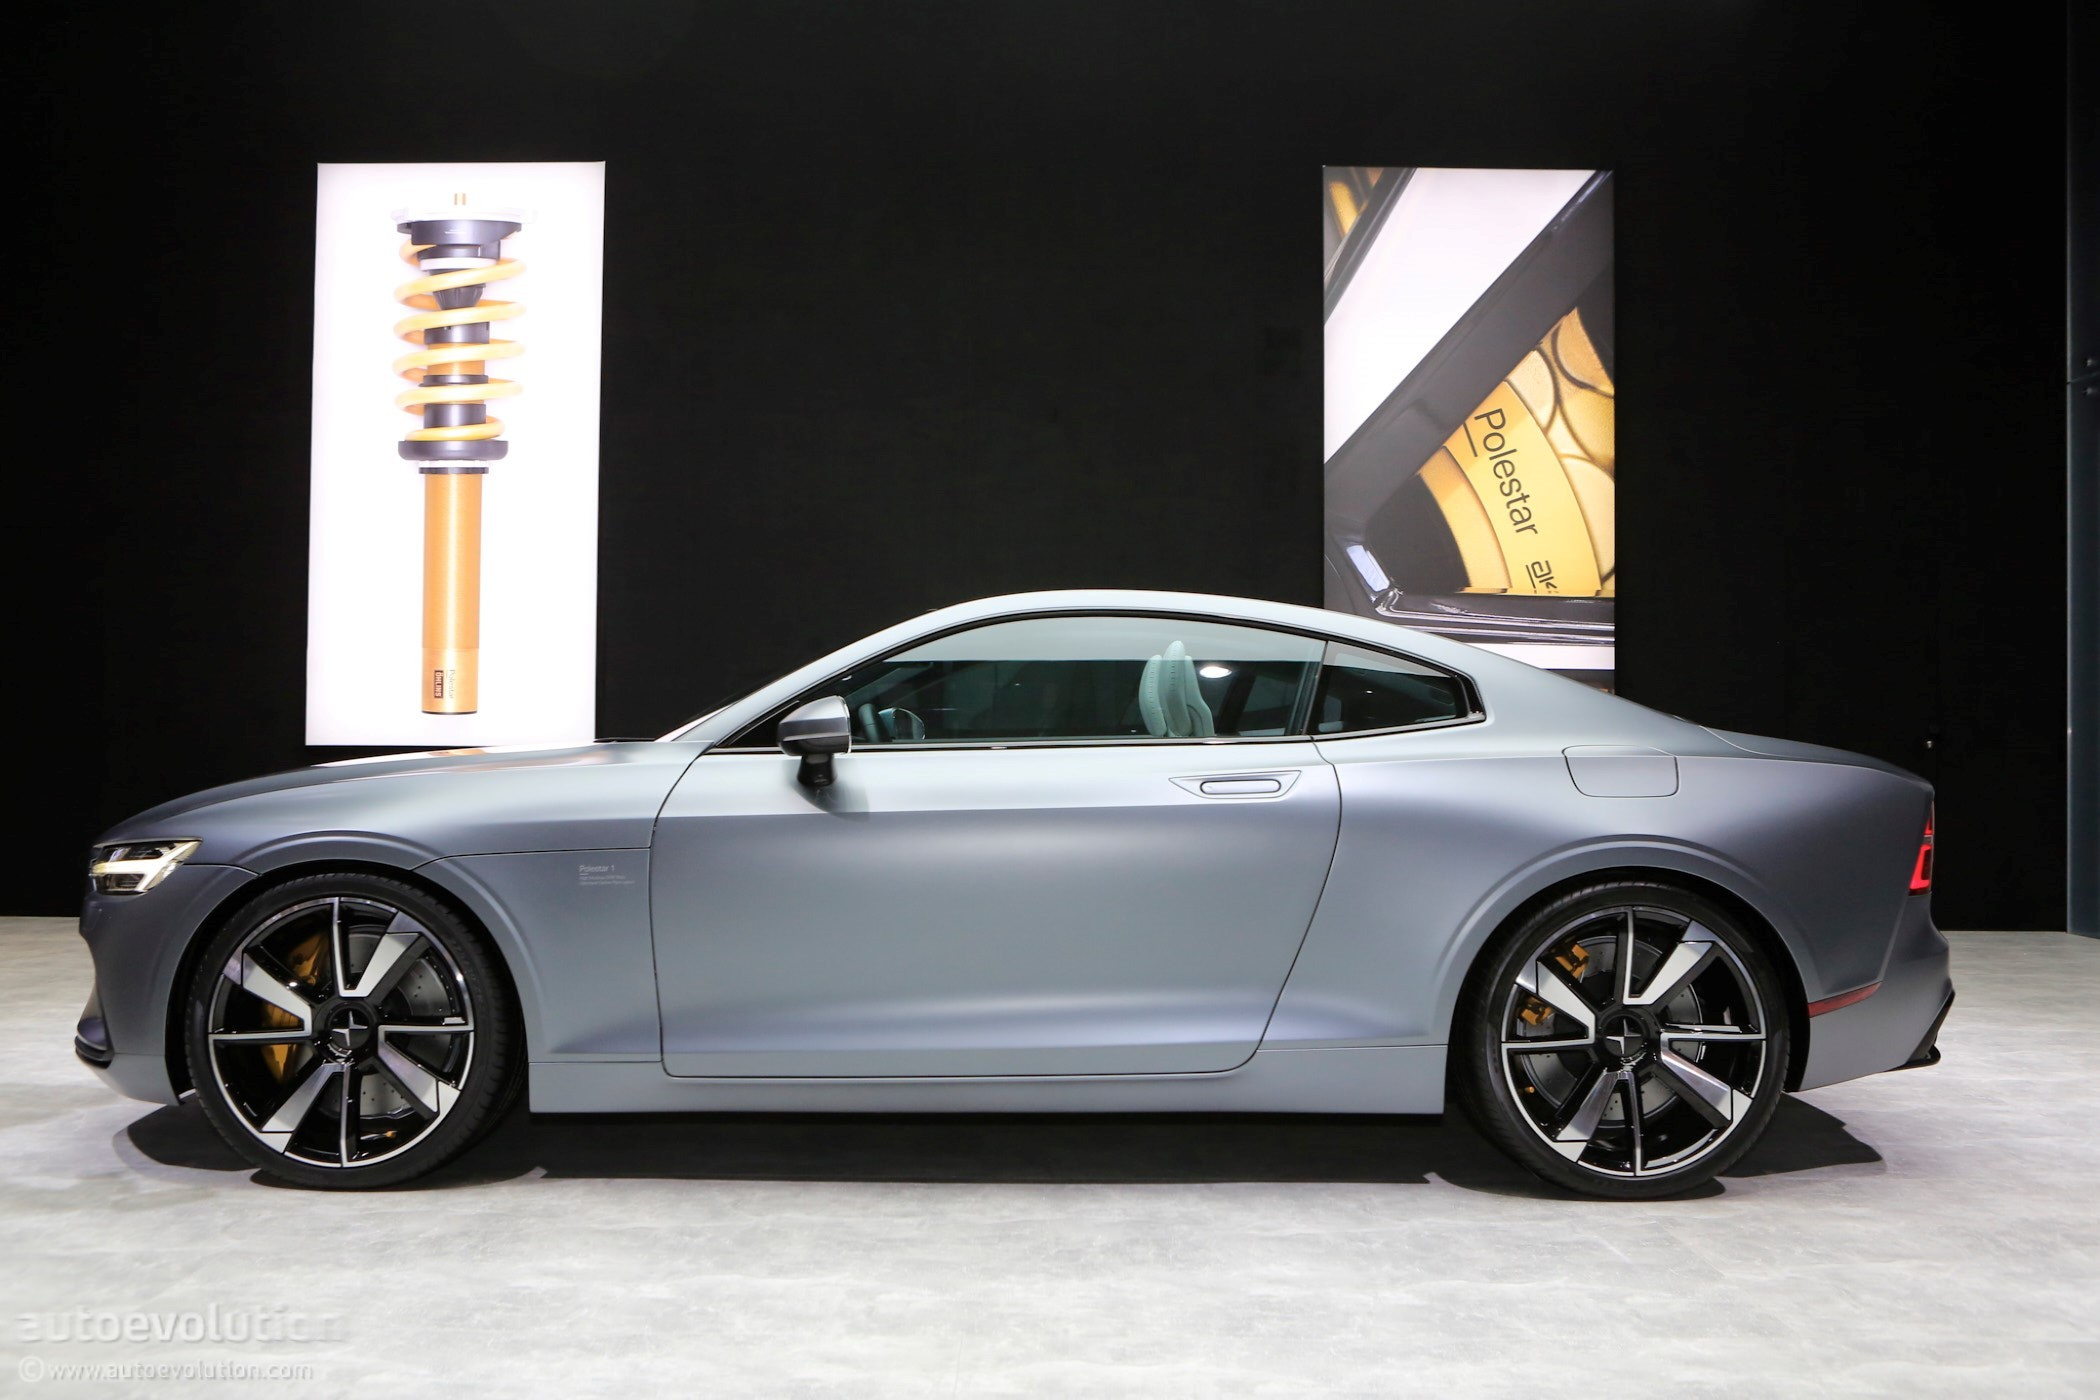 Polestar 1 offers pre-ordering in 18 countries